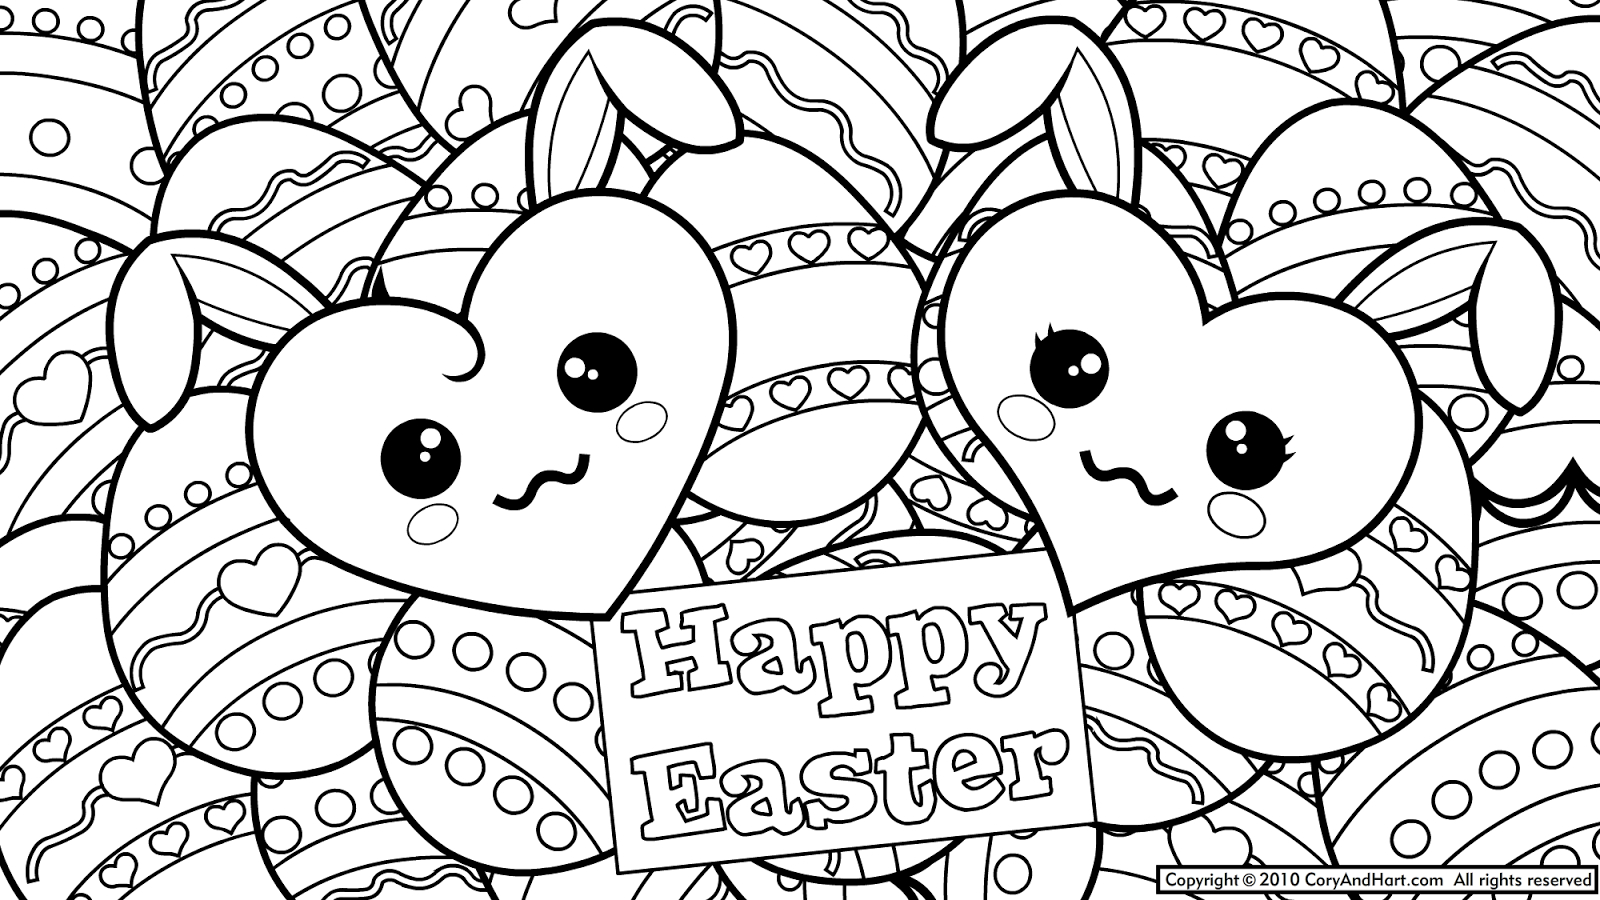 Mosaic Coloring Pages to Print Collection Of Easter Coloring Pages for Kids Crazy Little Projects Printable